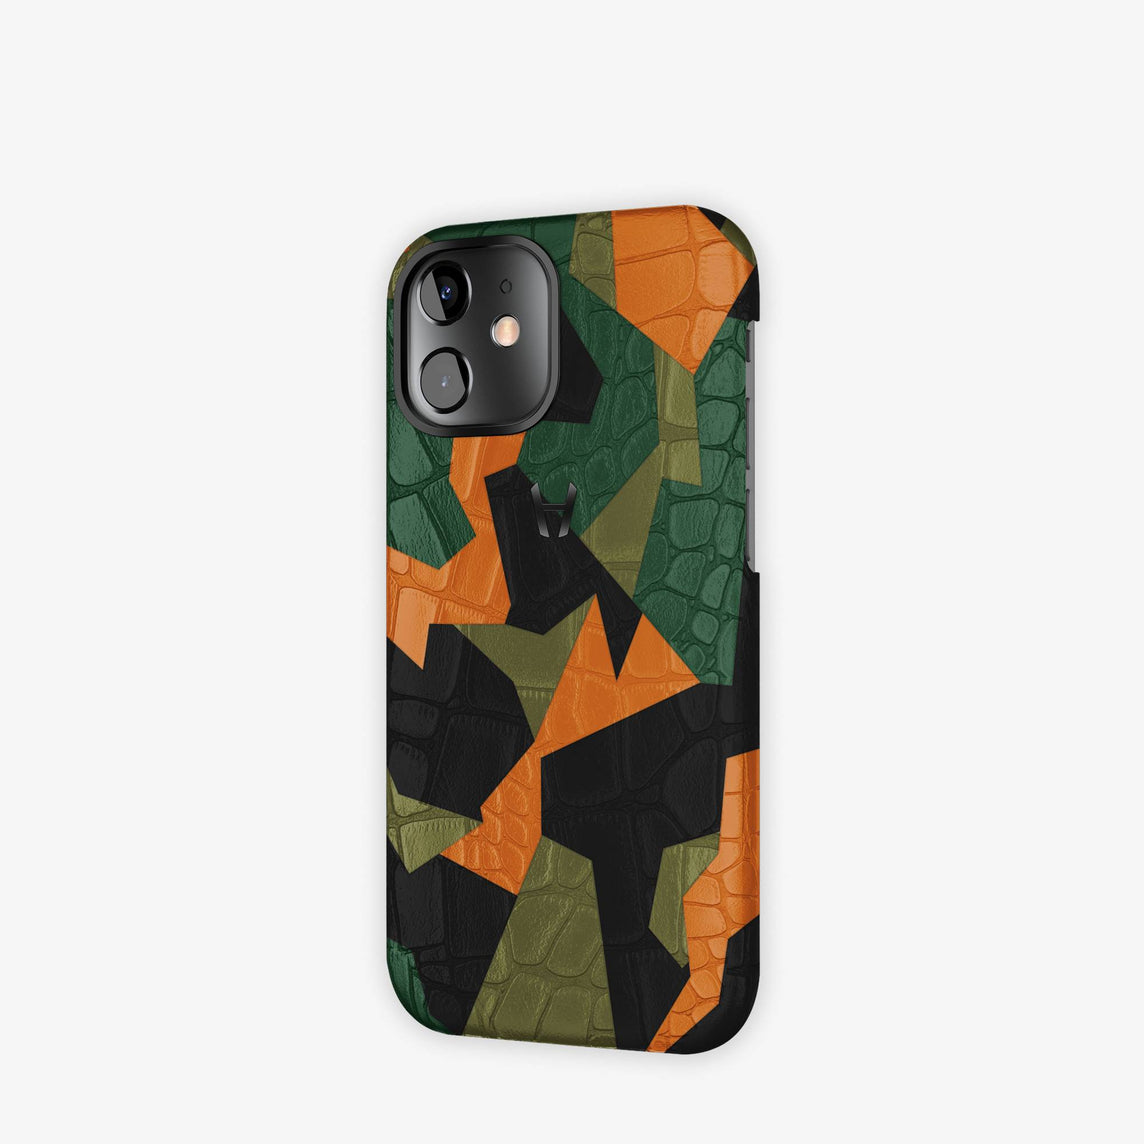 Alligator Camo Case iPhone 12 Mini | Green - Black